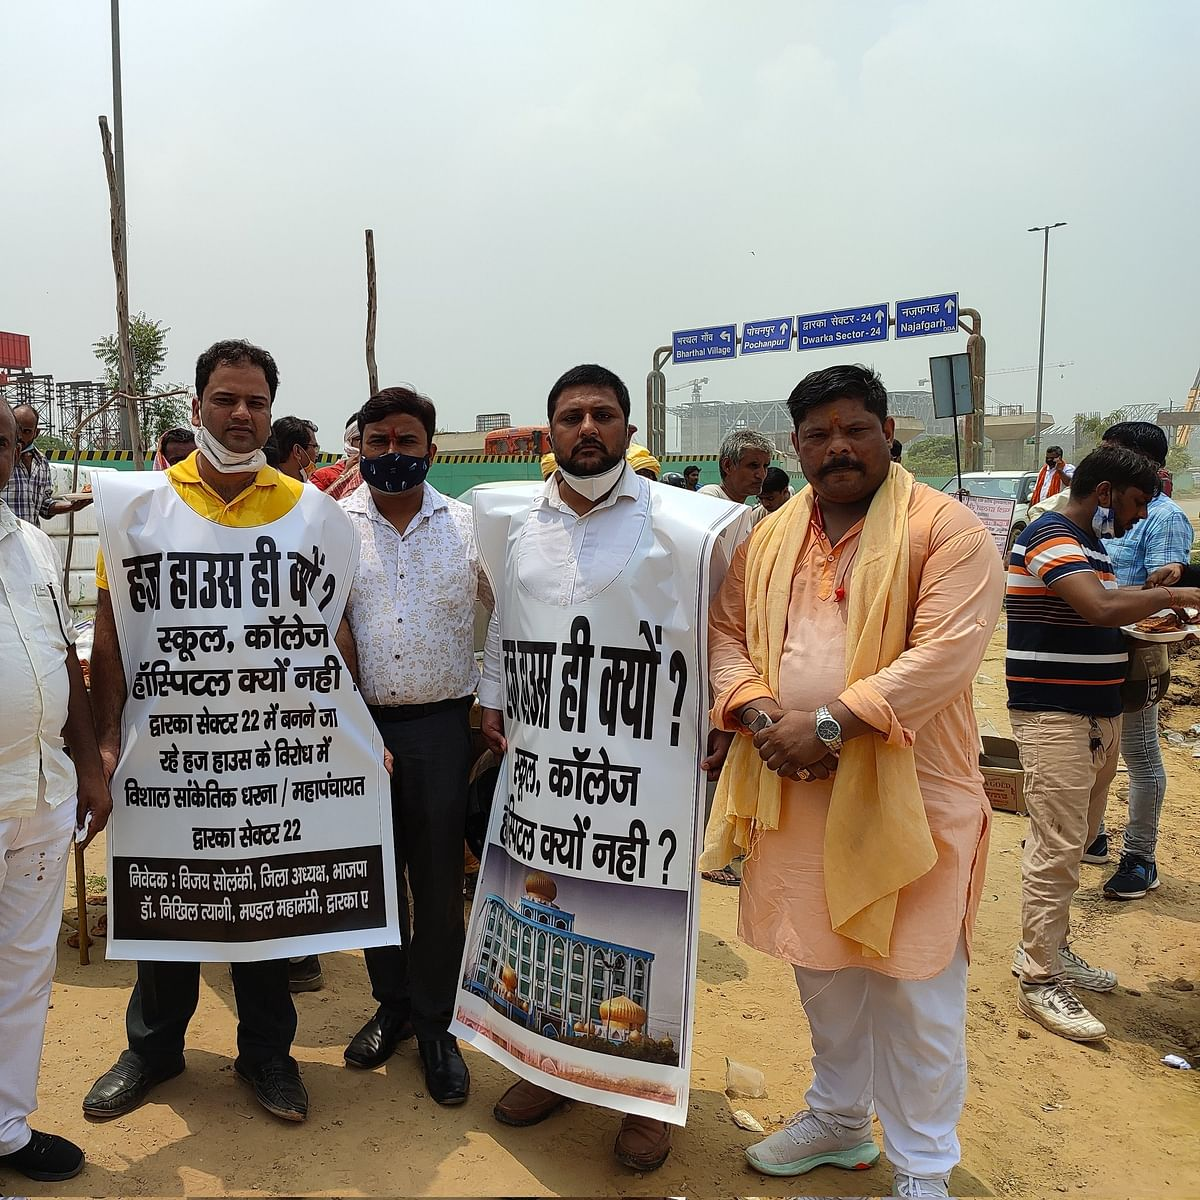 """<div class=""""paragraphs""""><p>Here Aazad Vinod (right most) is present at the protest against setting up a Hajj house in Dwarka.</p></div>"""